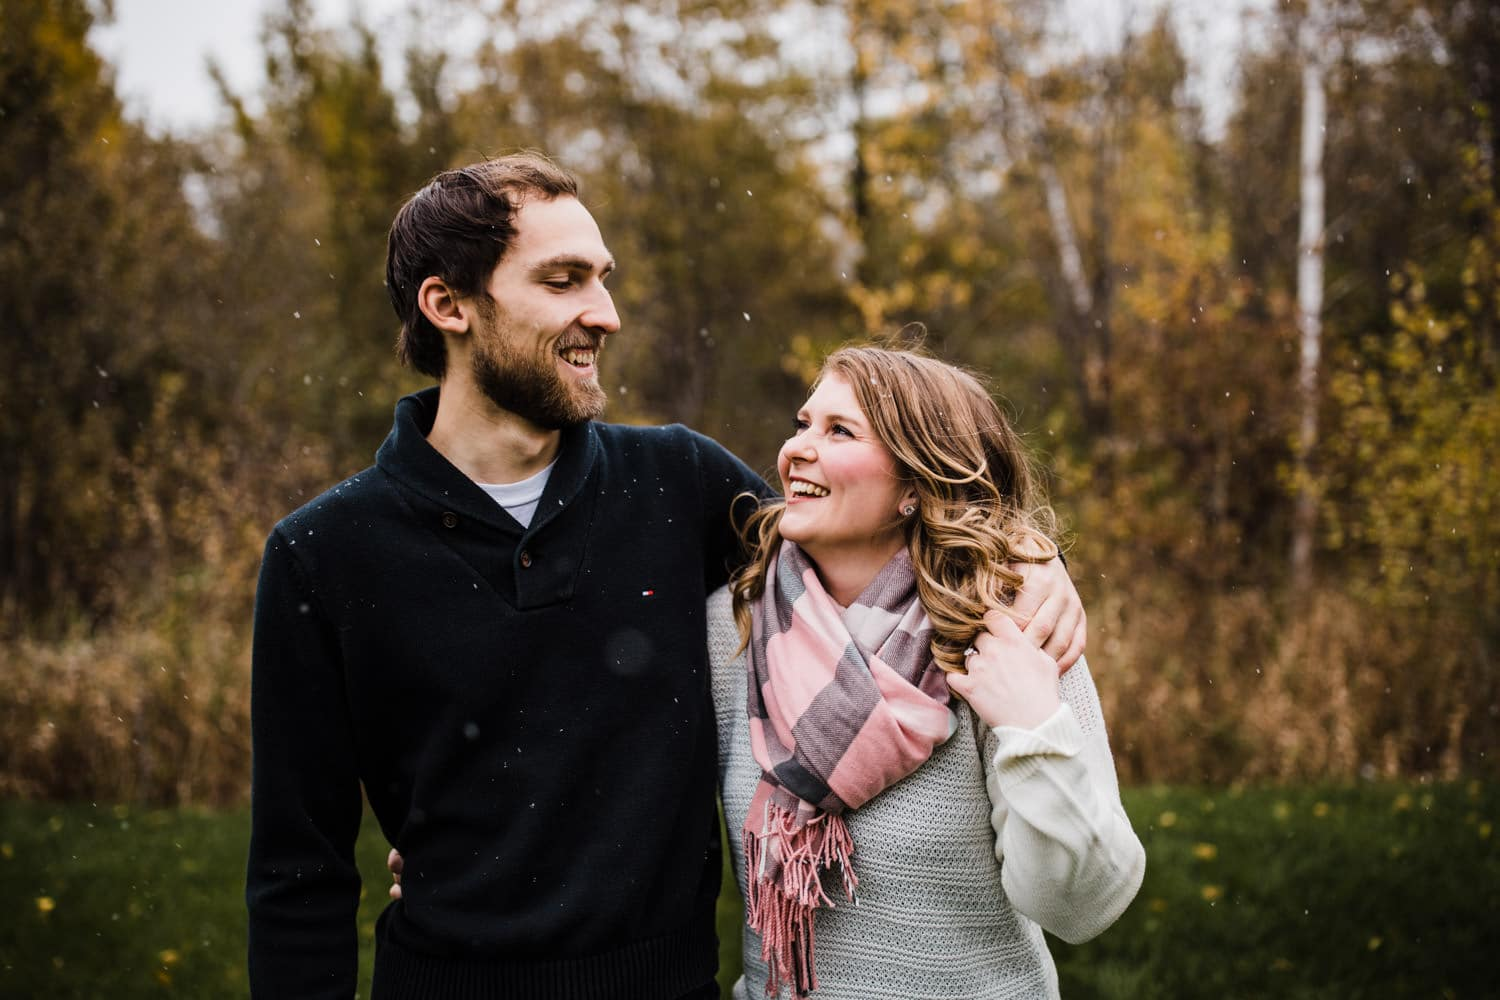 couple laugh during snowfall - ottawa winter engagement photos